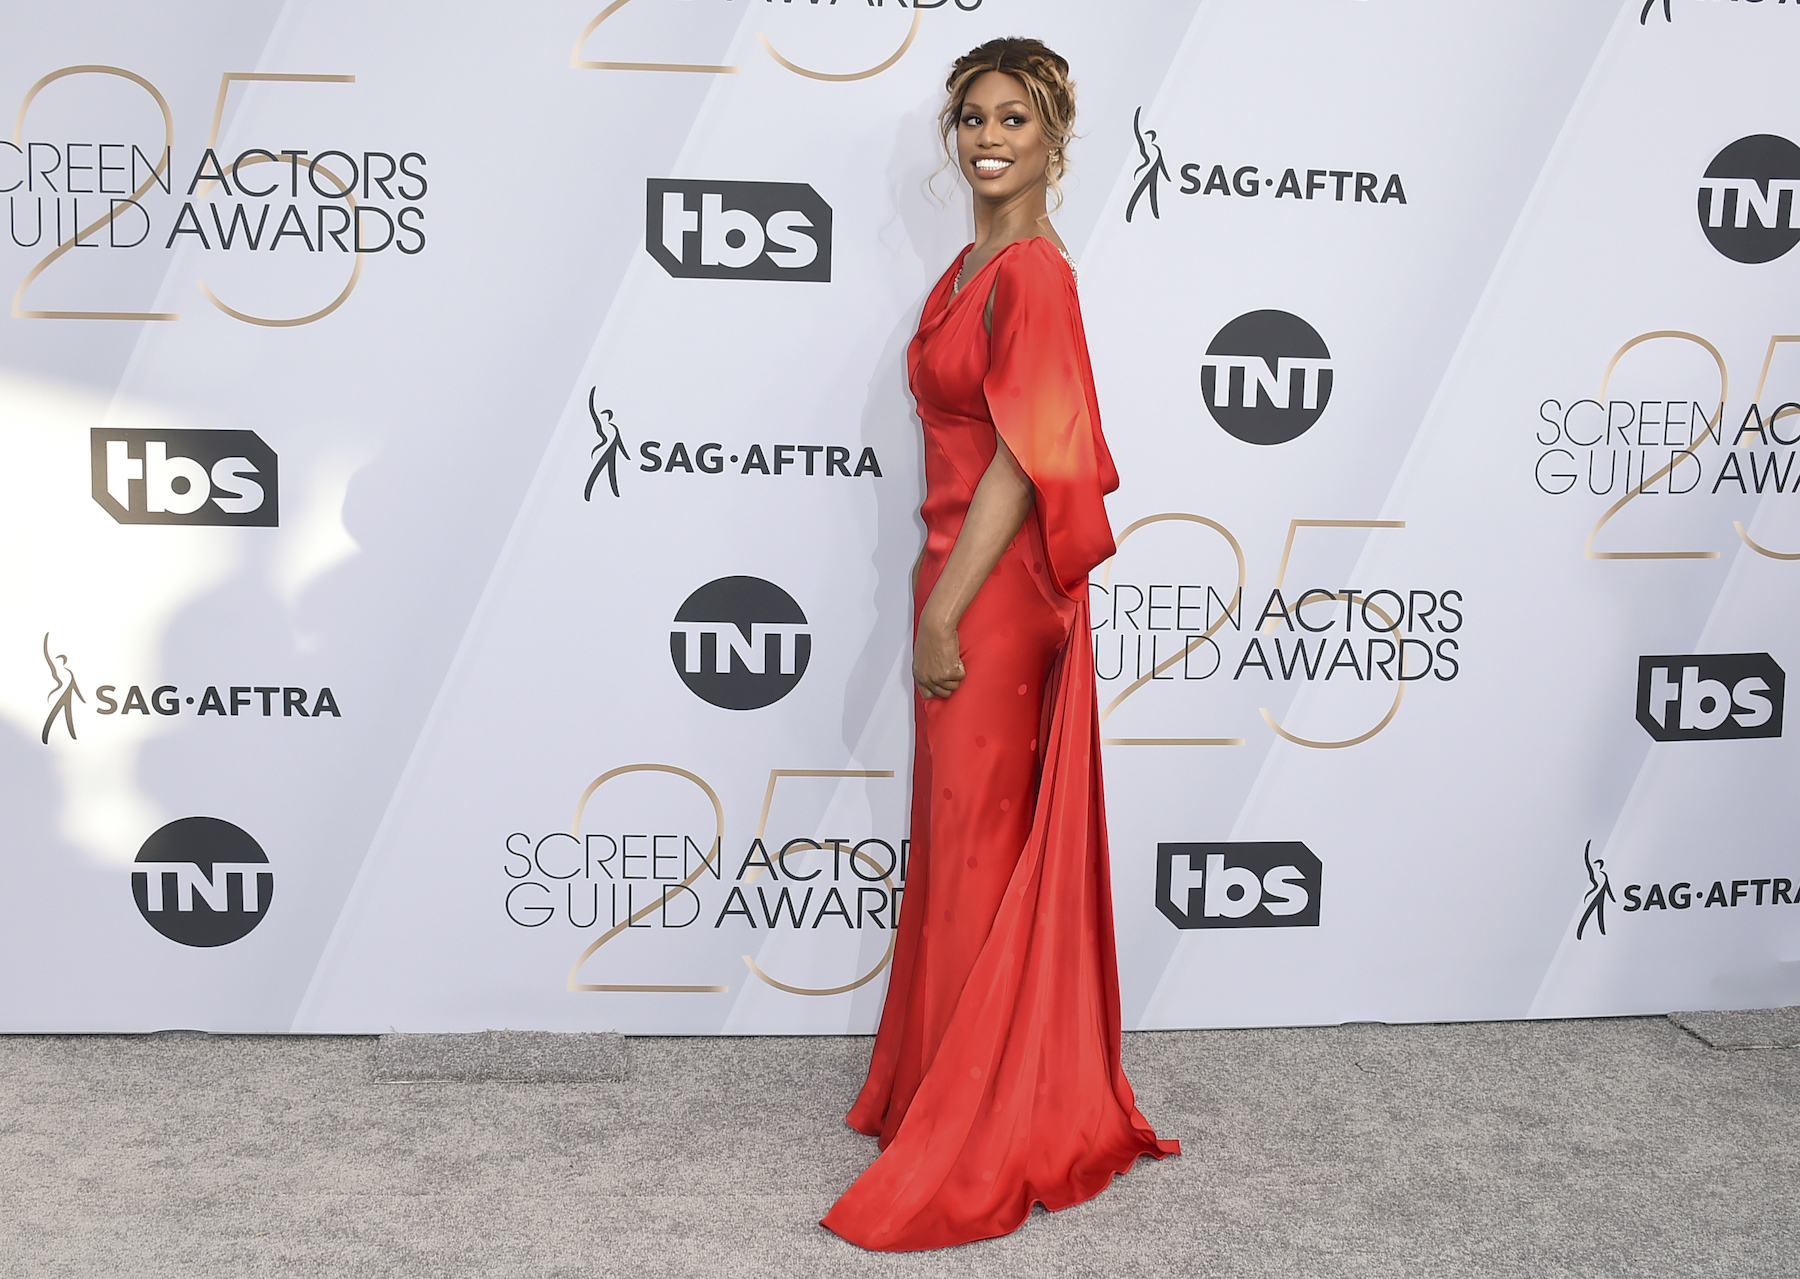 <div class='meta'><div class='origin-logo' data-origin='AP'></div><span class='caption-text' data-credit='Jordan Strauss/Invision/AP'>Laverne Cox arrives at the 25th annual Screen Actors Guild Awards at the Shrine Auditorium & Expo Hall on Sunday, Jan. 27, 2019, in Los Angeles.</span></div>